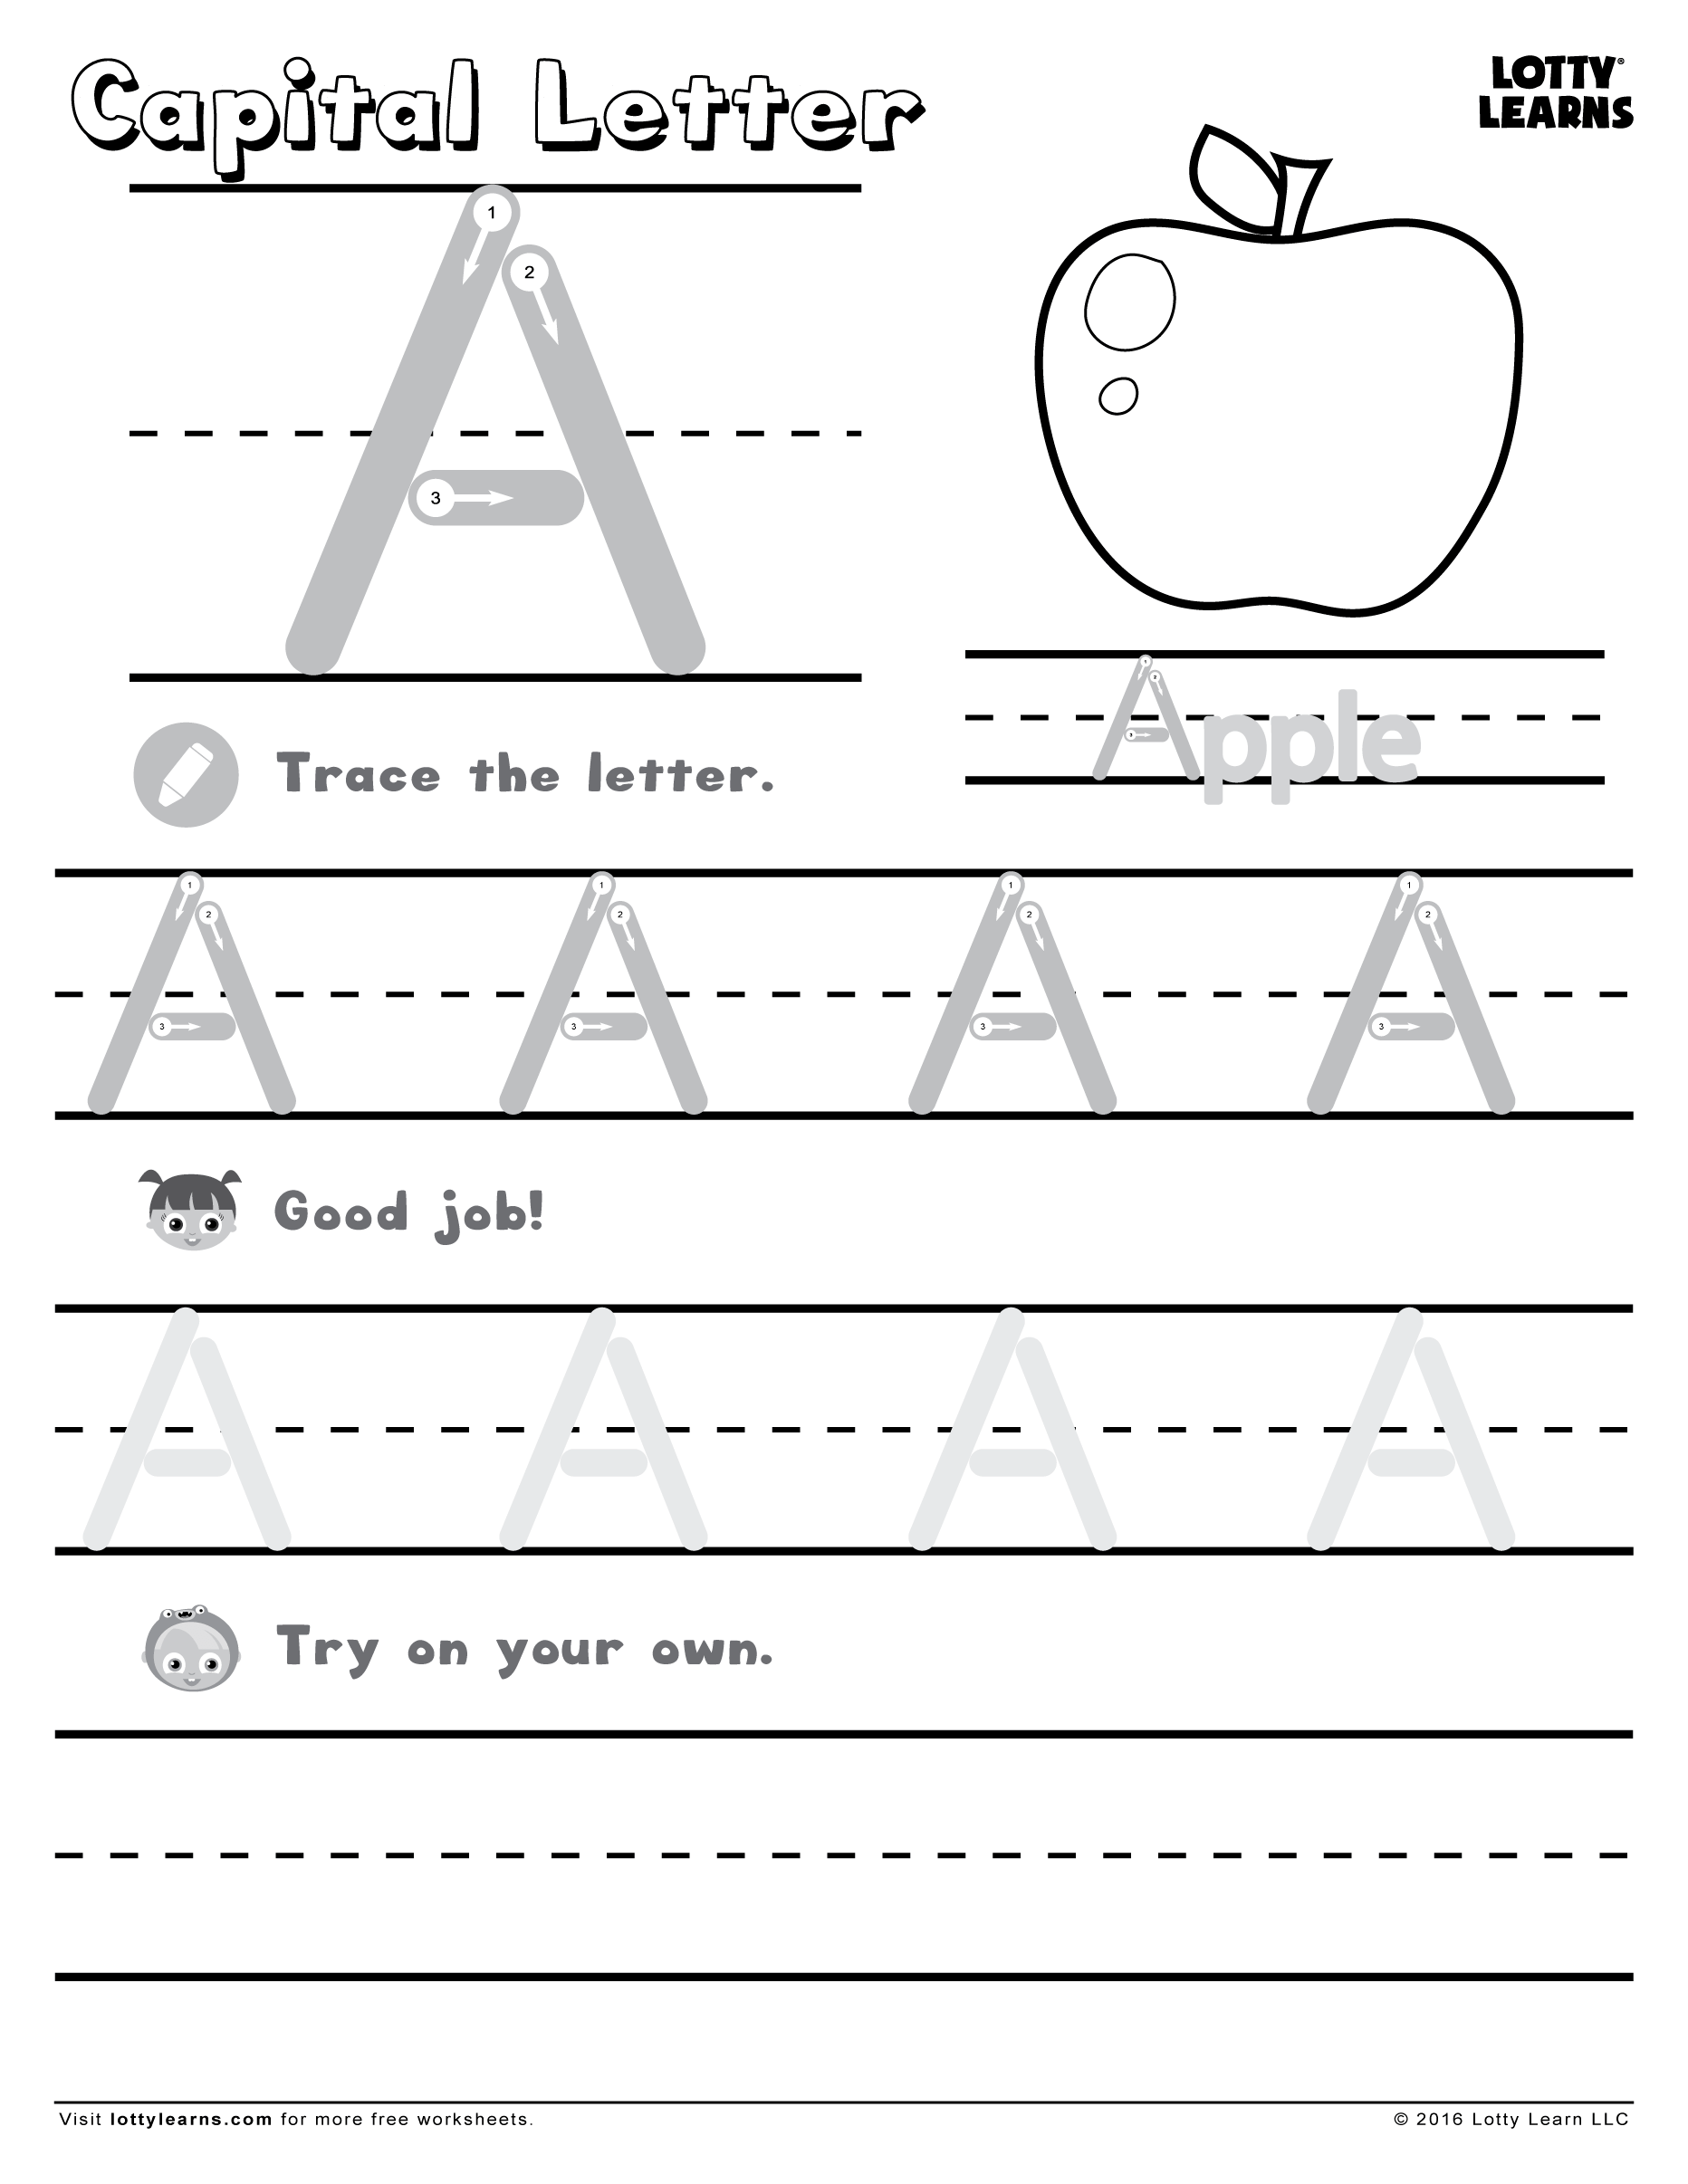 Capital Letter A Lotty Learns Handwriting Worksheets For Kids Handwriting Practice Sheets Alphabet Practice Sheets [ 2412 x 1864 Pixel ]